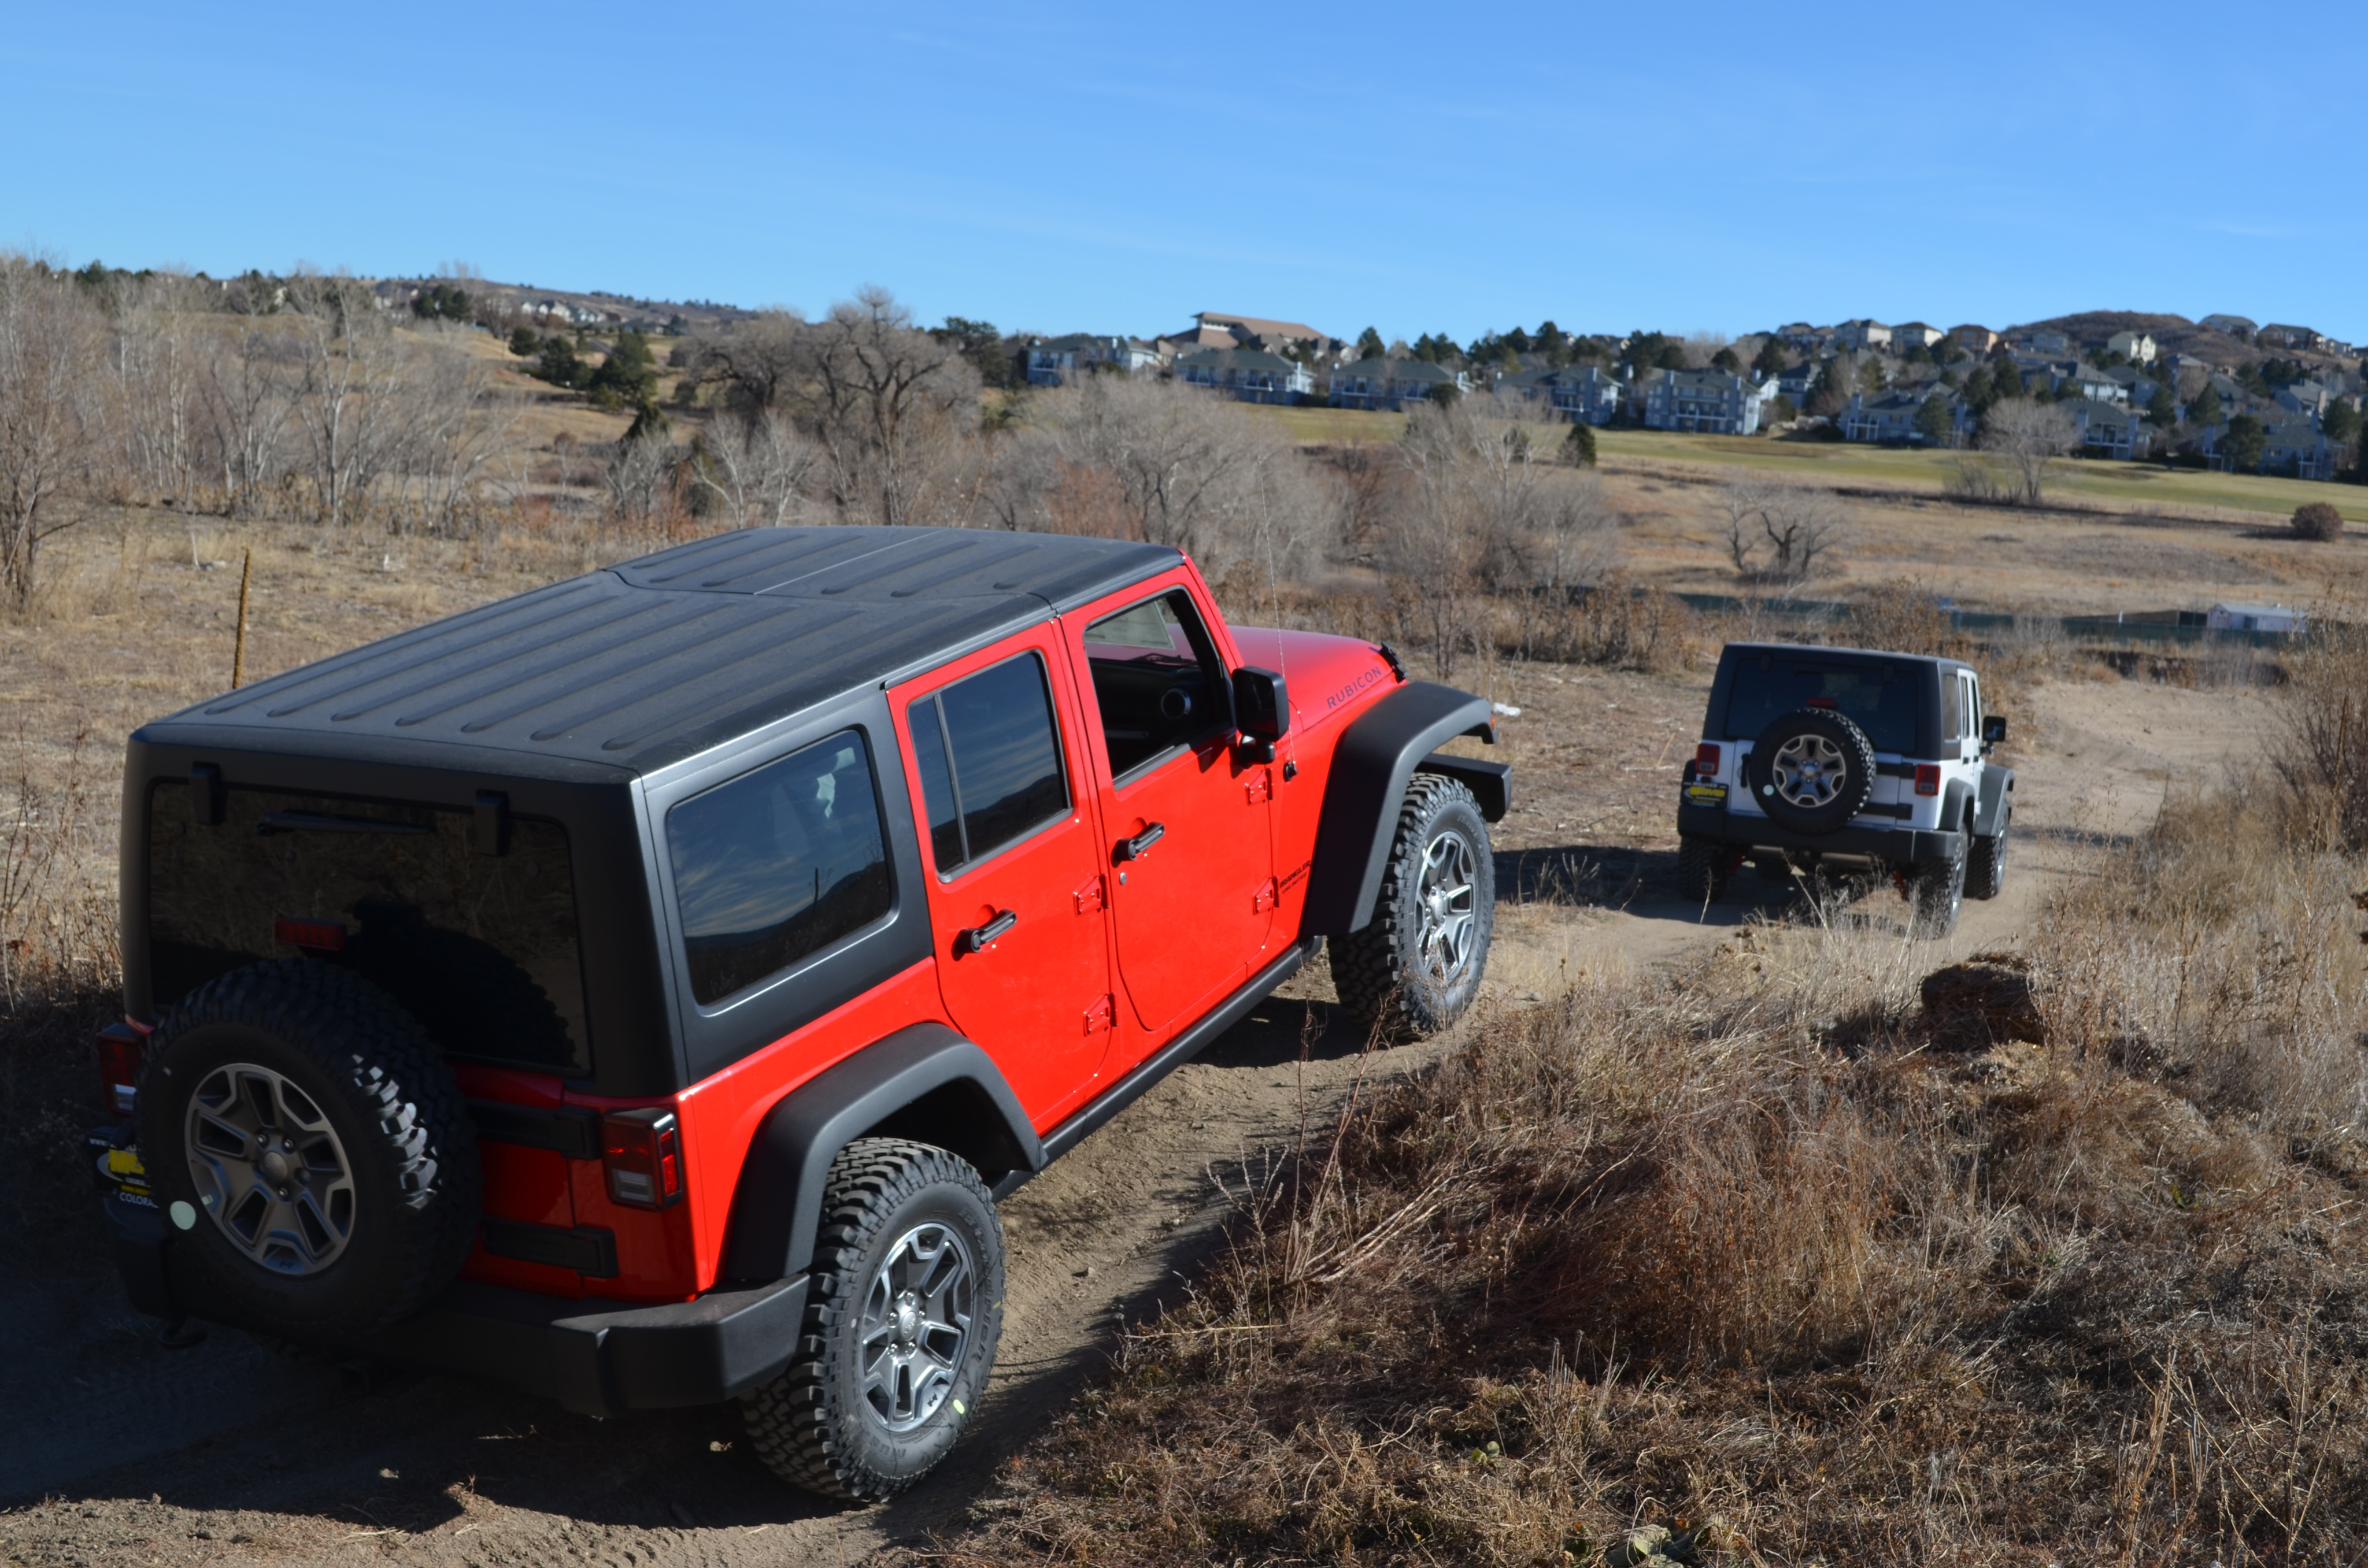 Explore the off road capabilities of your next Jeep vehicle at the off road test track at Medved Chrysler Dodge Jeep Ram.